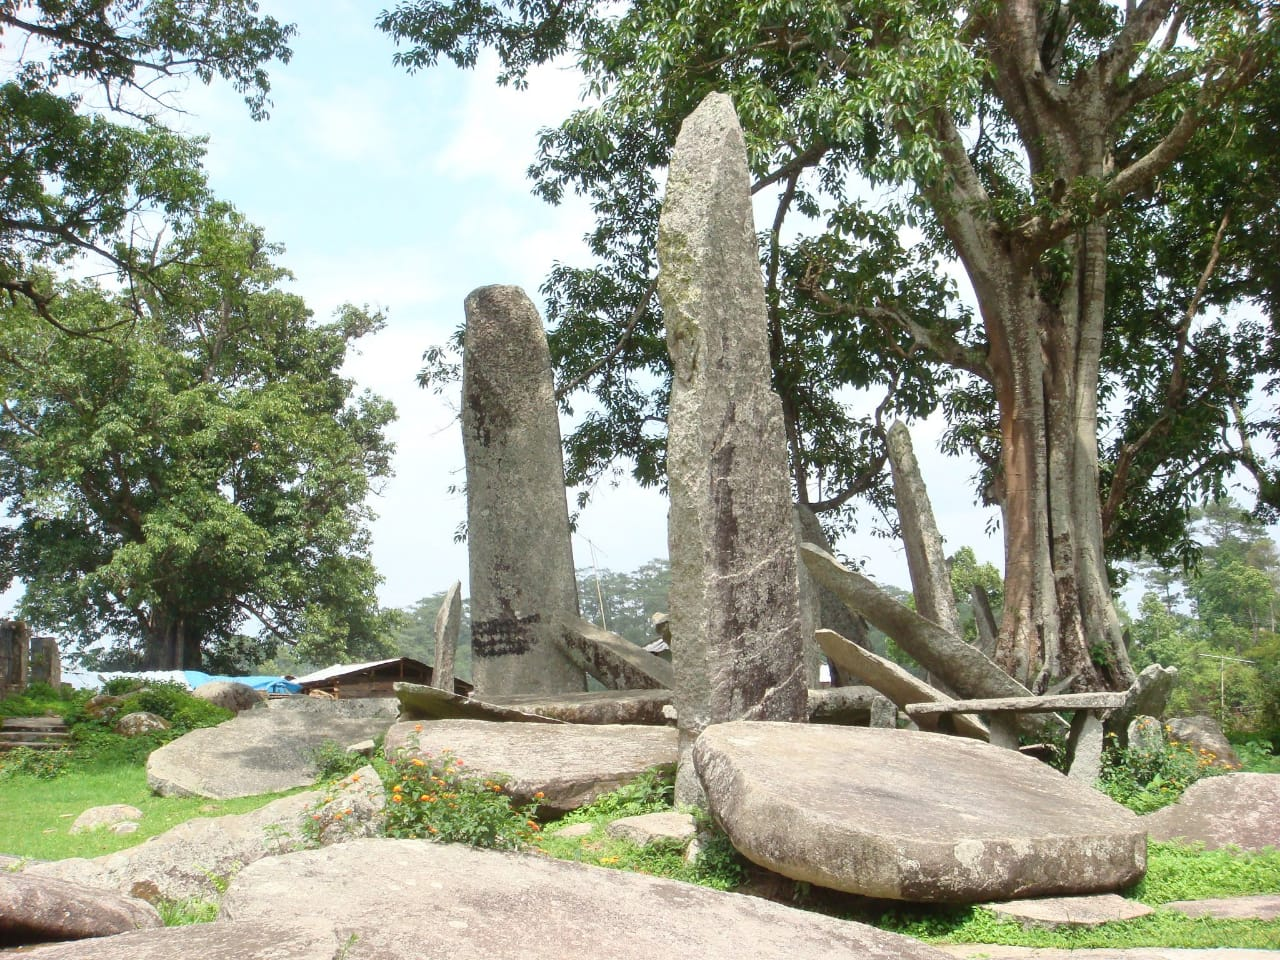 Nartiang Monoliths